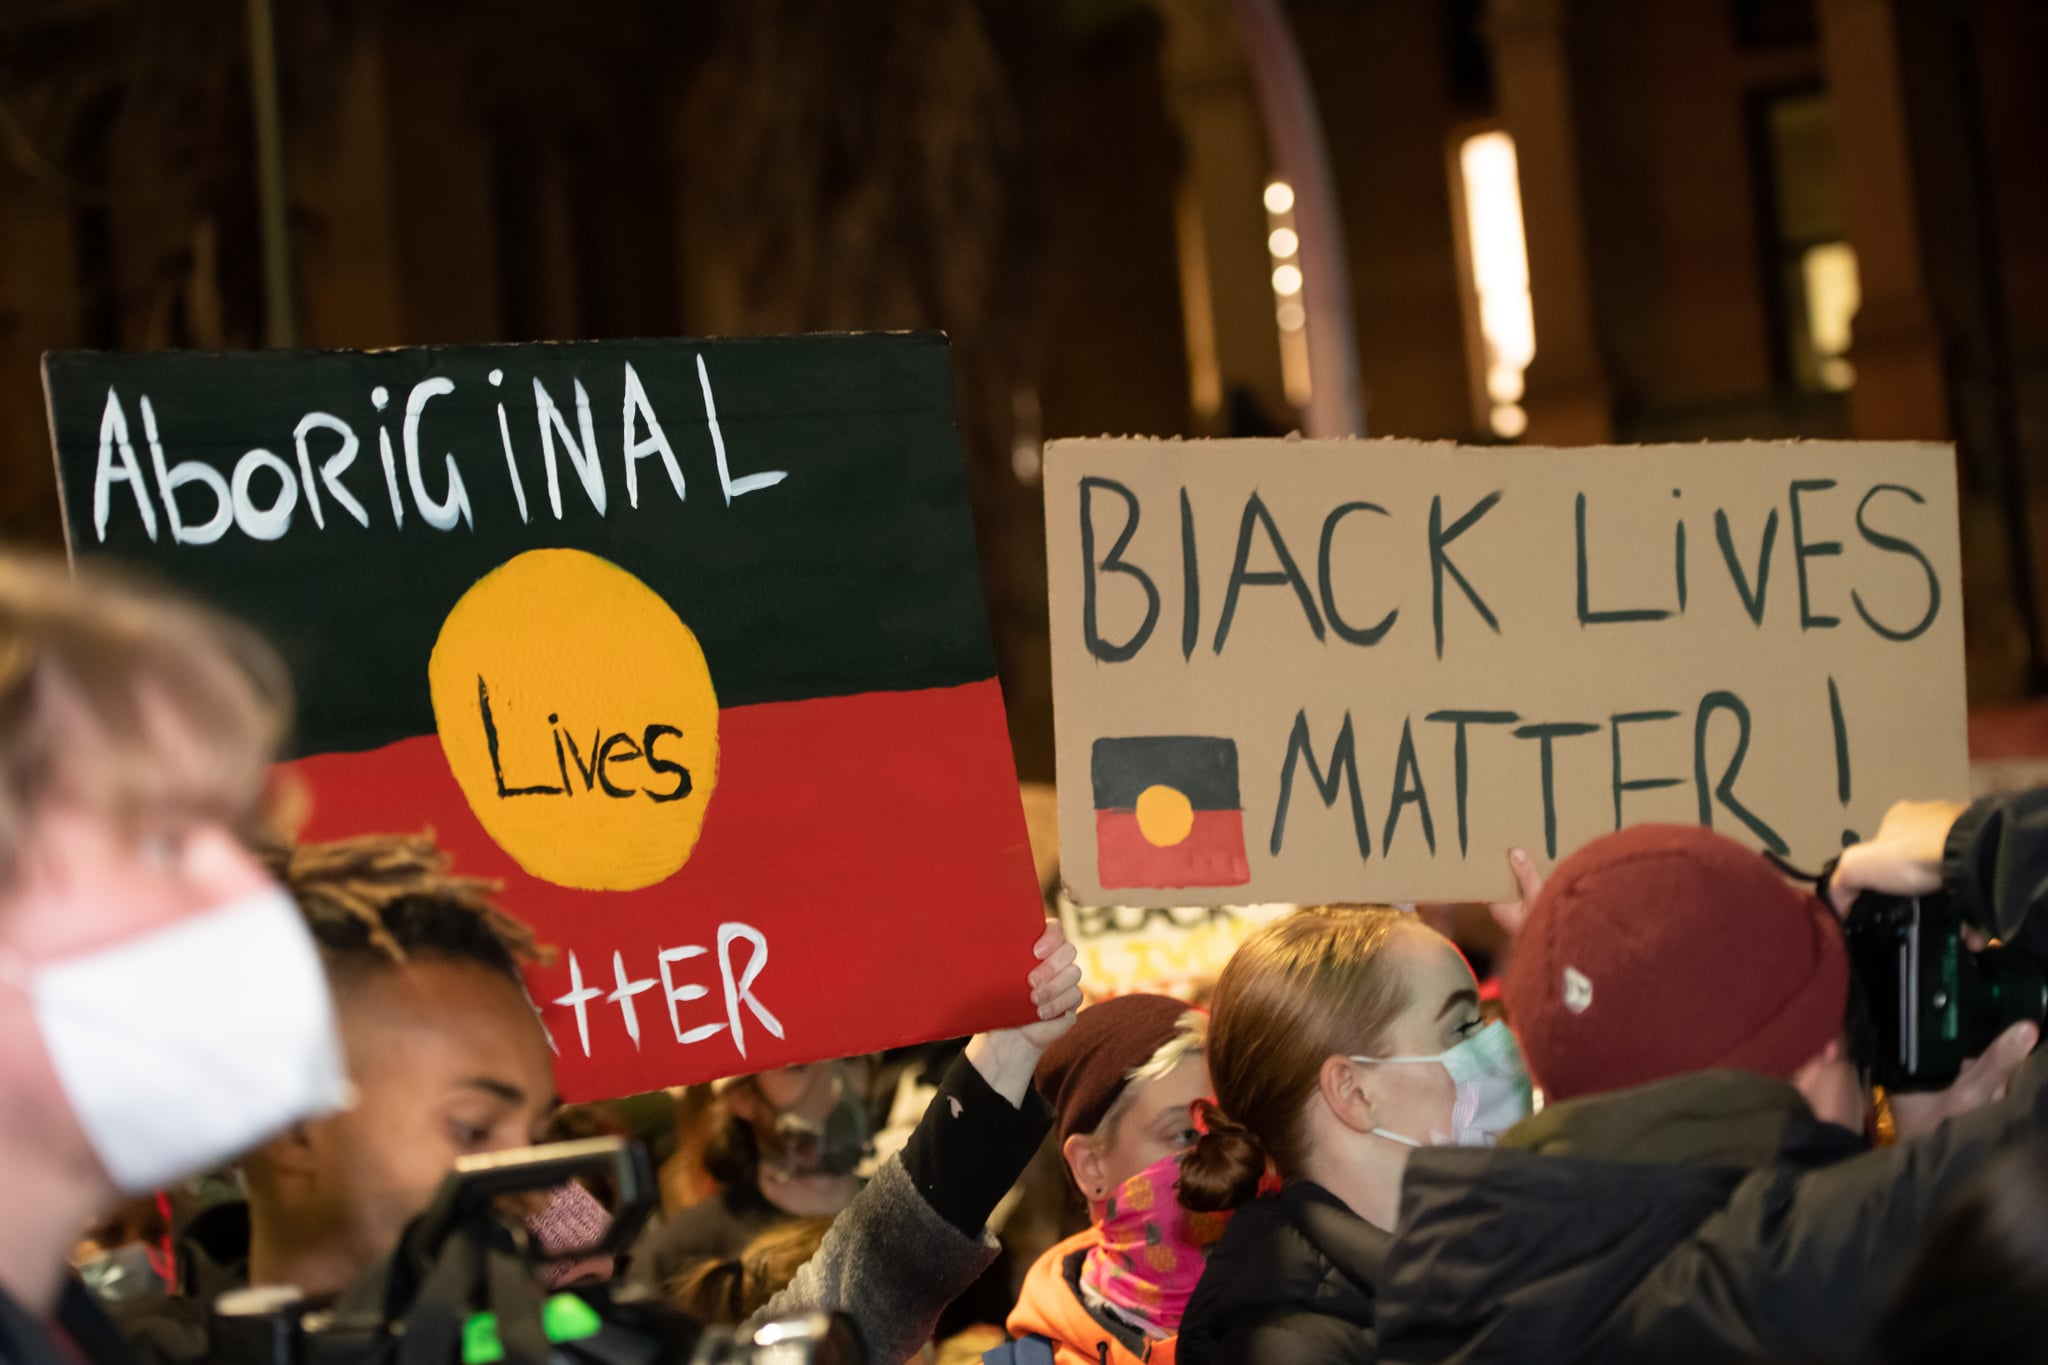 Protestors wearing masks in Martin Place during a ''Black Lives Matter'' rally, held in solidarity with U.S. Protests over the death of George Floyd on June 02, 2020 in Sydney, Australia. The event was organised to rally against aboriginal deaths in custody in Australia as well as in solidarity with protests across the United States following the killing of an unarmed black man George Floyd at the hands of a police officer in Minneapolis, Minnesota. (Photo by Izhar Khan/NurPhoto via Getty Images)